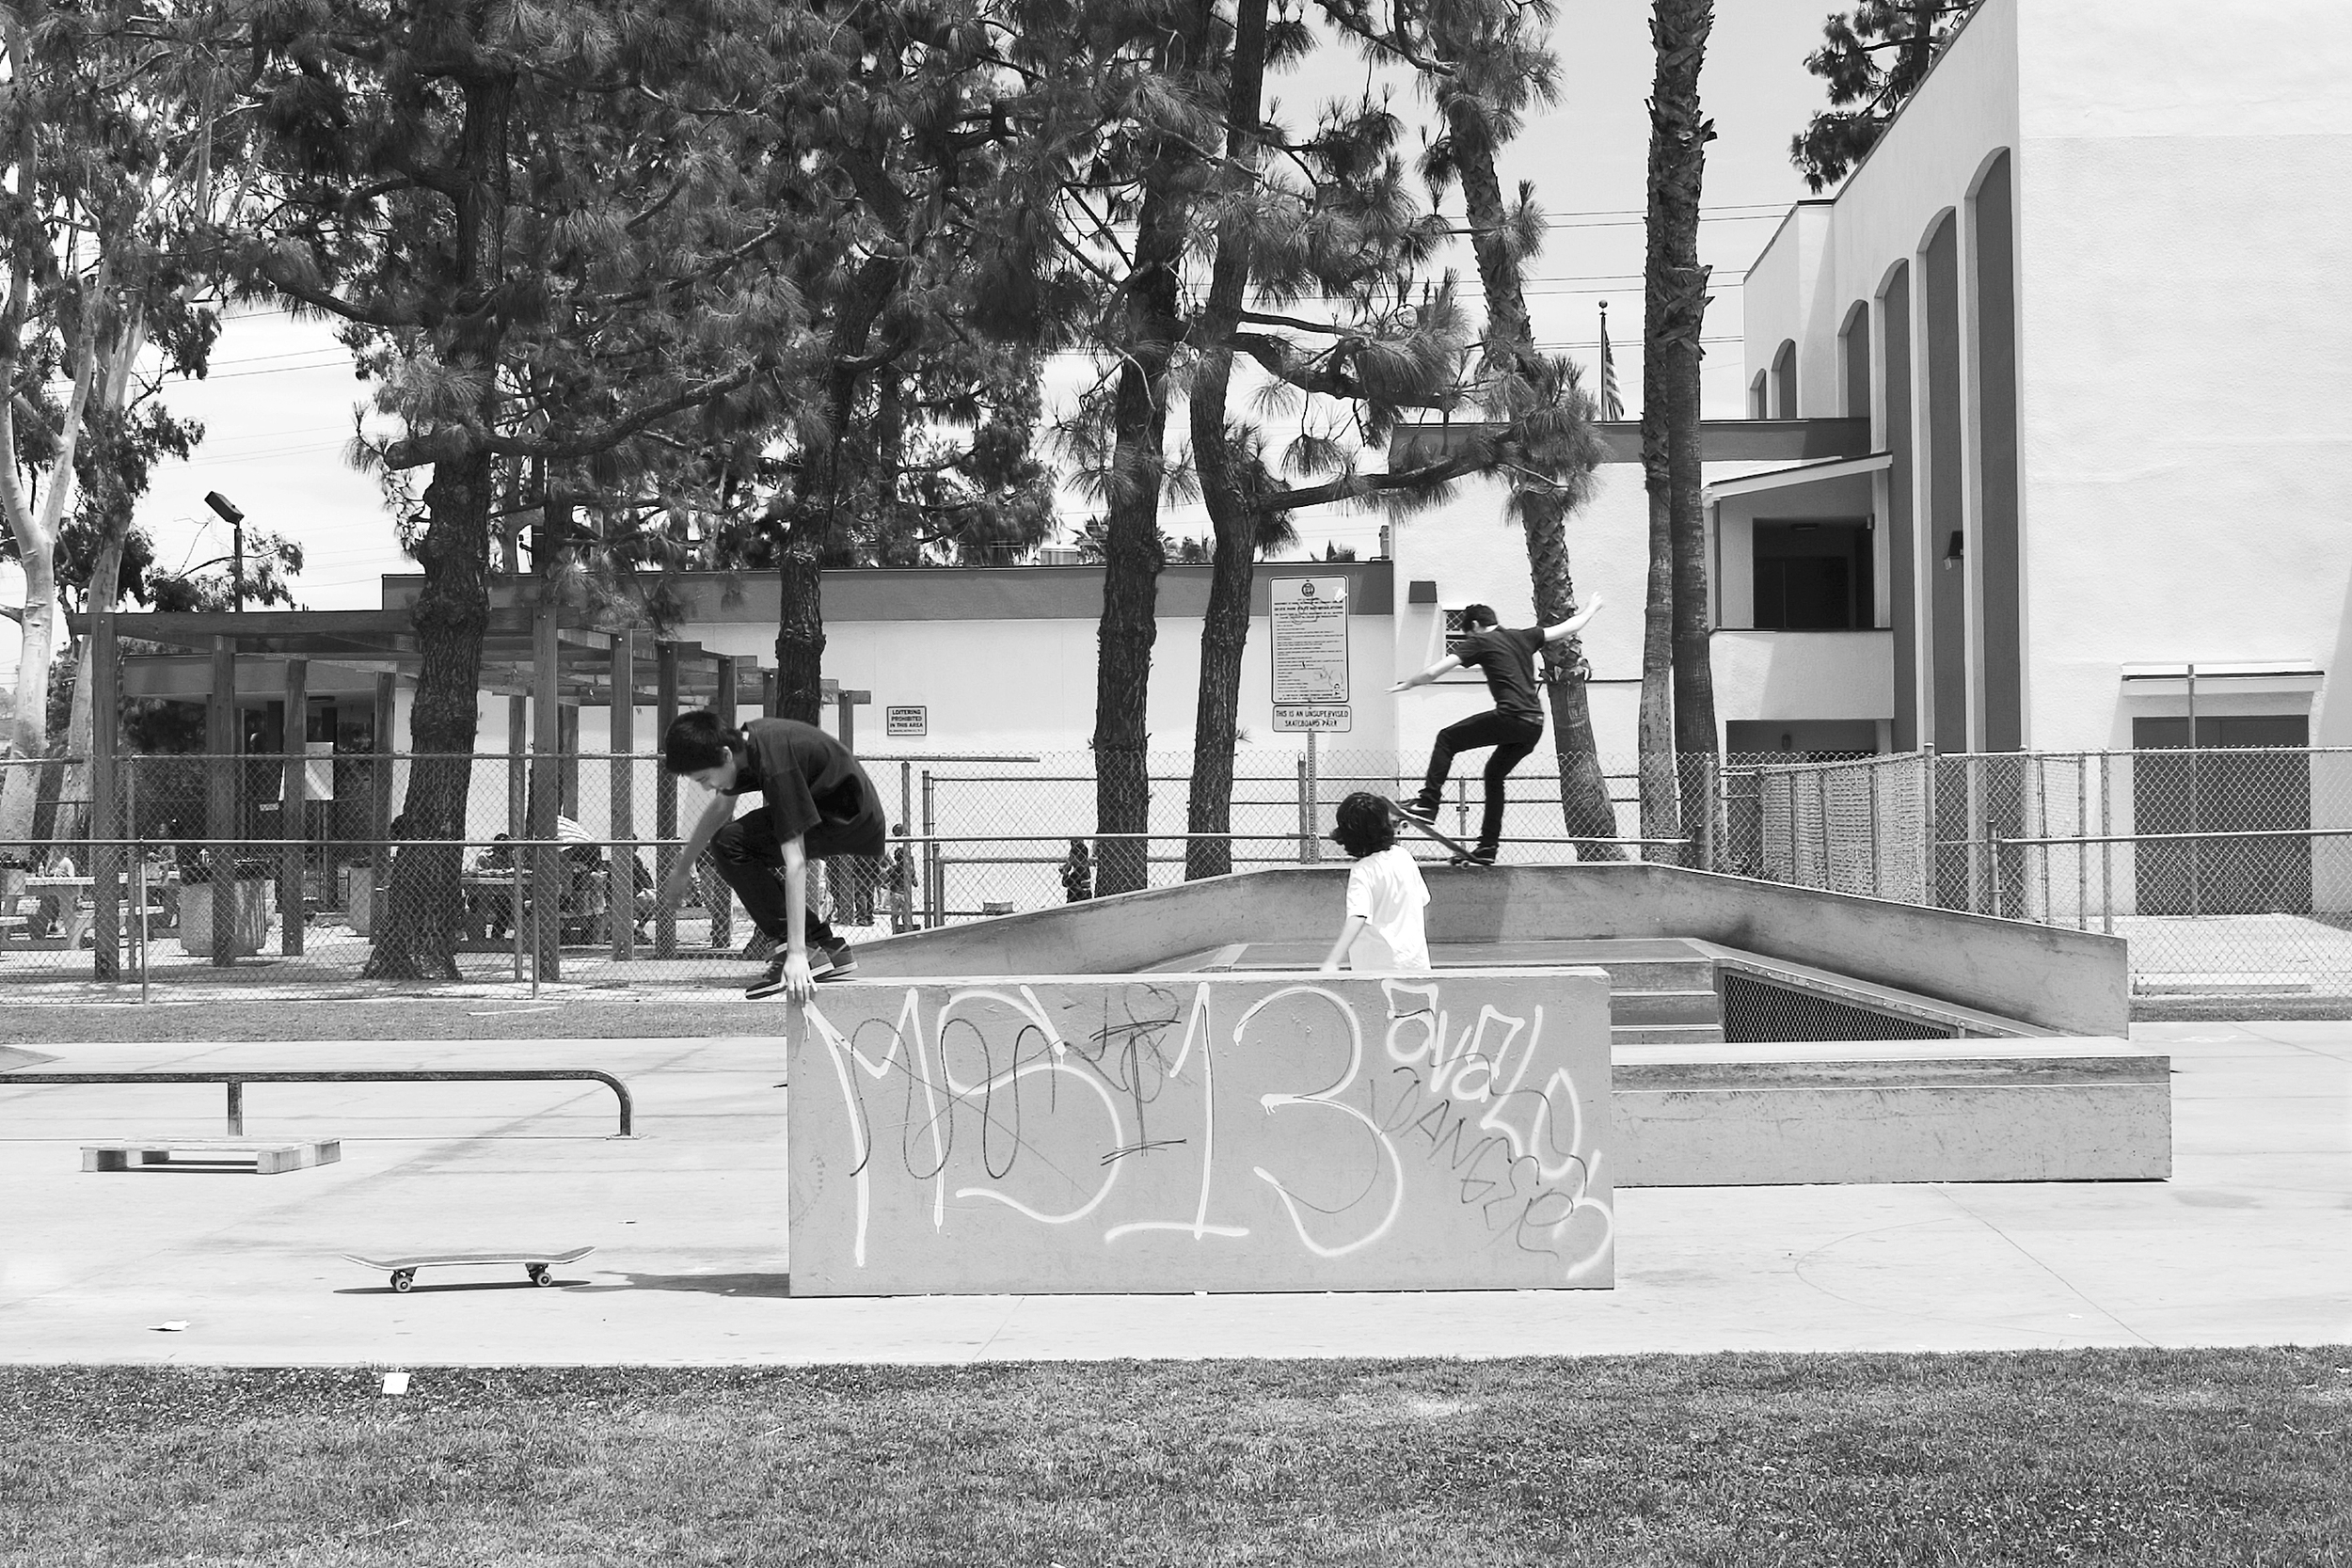 """Three young teens enjoy skateboarding at Rogers Park in Inglewood. Graffiti tags declare the presence of the MS-13 (or Mara Salvatrucha) and Avalon Crips gangs. 2009.                                0     false             18 pt     18 pt     0     0         false     false     false                                                     /* Style Definitions */ table.MsoNormalTable {mso-style-name:""""Table Normal""""; mso-tstyle-rowband-size:0; mso-tstyle-colband-size:0; mso-style-noshow:yes; mso-style-parent:""""""""; mso-padding-alt:0in 5.4pt 0in 5.4pt; mso-para-margin:0in; mso-para-margin-bottom:.0001pt; mso-pagination:widow-orphan; font-size:10.0pt; font-family:""""Times New Roman"""";}"""